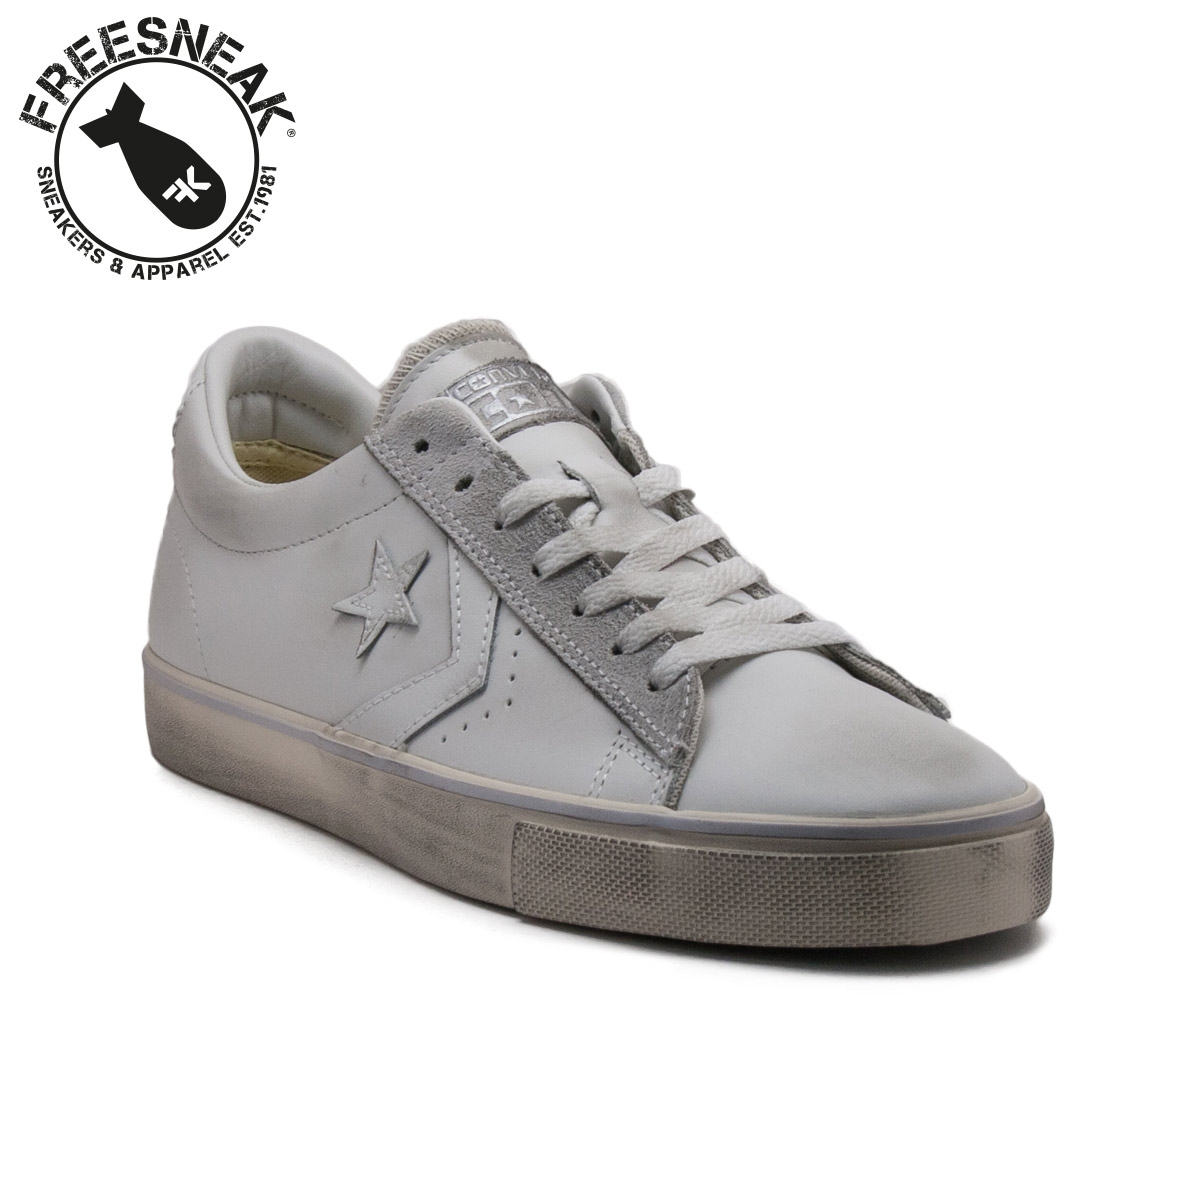 converse pro leather vulc ox leather bianca